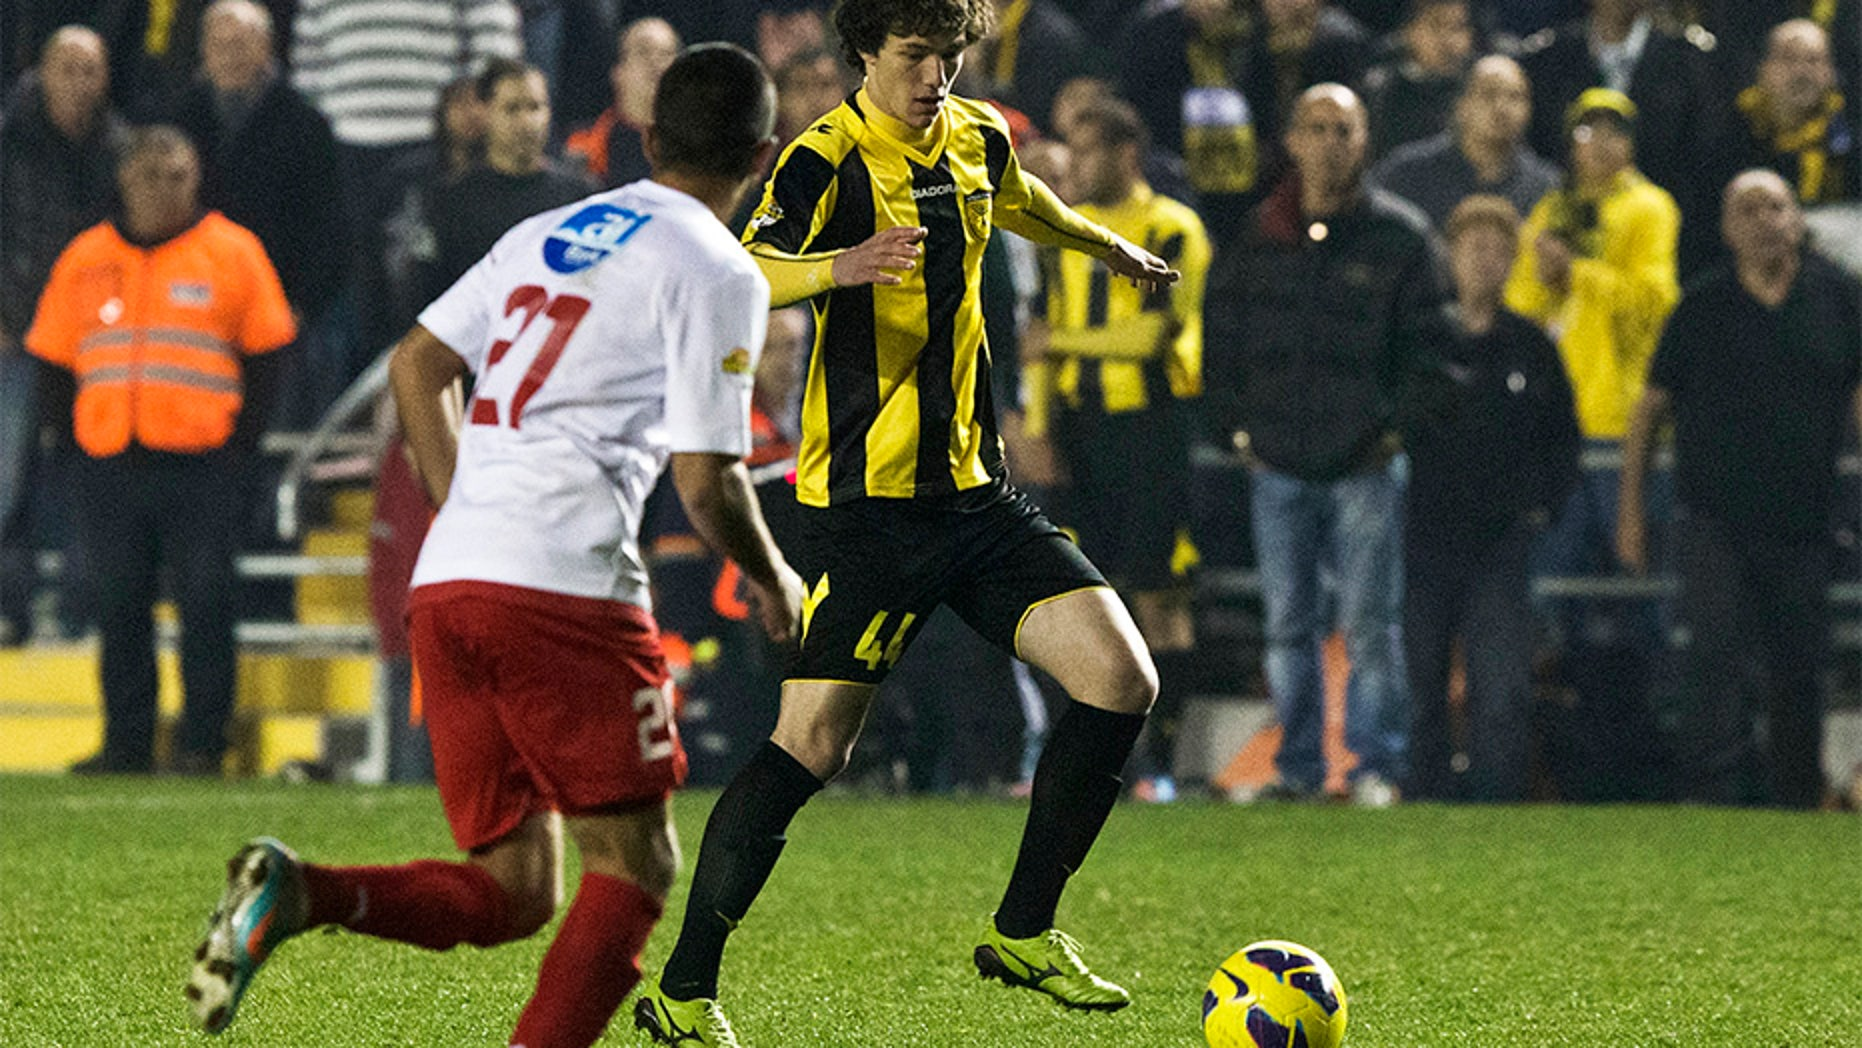 Feb. 10, 2013: Beitar Jerusalem's Dzhabrail Kadiyev, right, plays during a match against Bnei Sakhnin as part of the Israeli Premier League, at Teddy Stadium in Jerusalem.